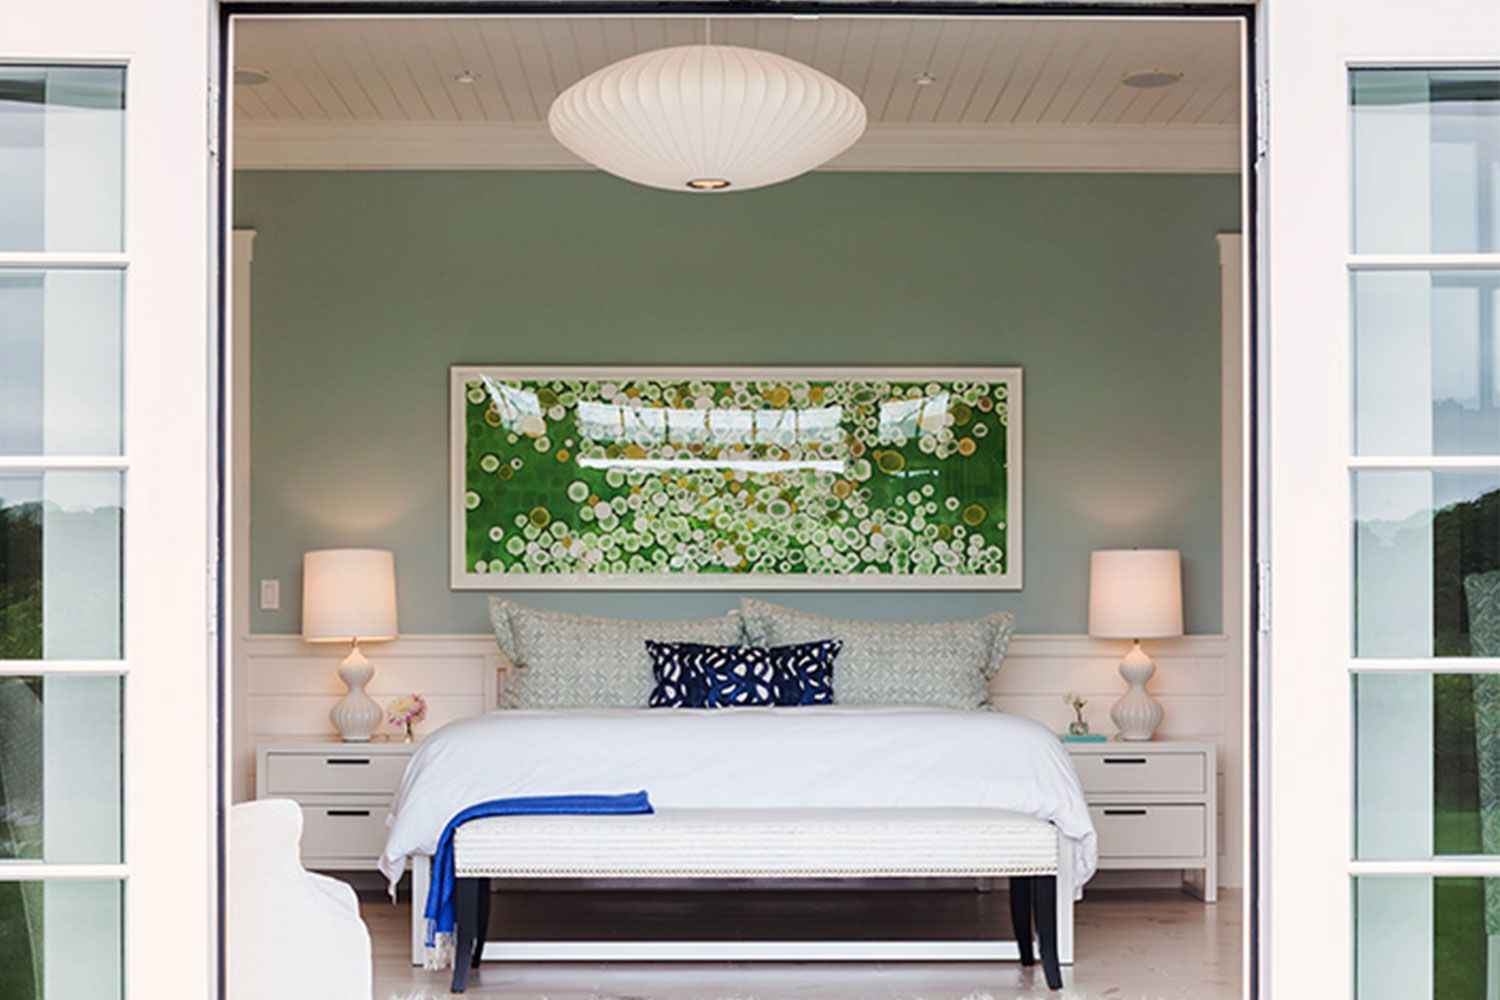 Our editors independently research, test, and recommend the best products; 22 Green Bedroom Design Ideas For A Fresh Upgrade